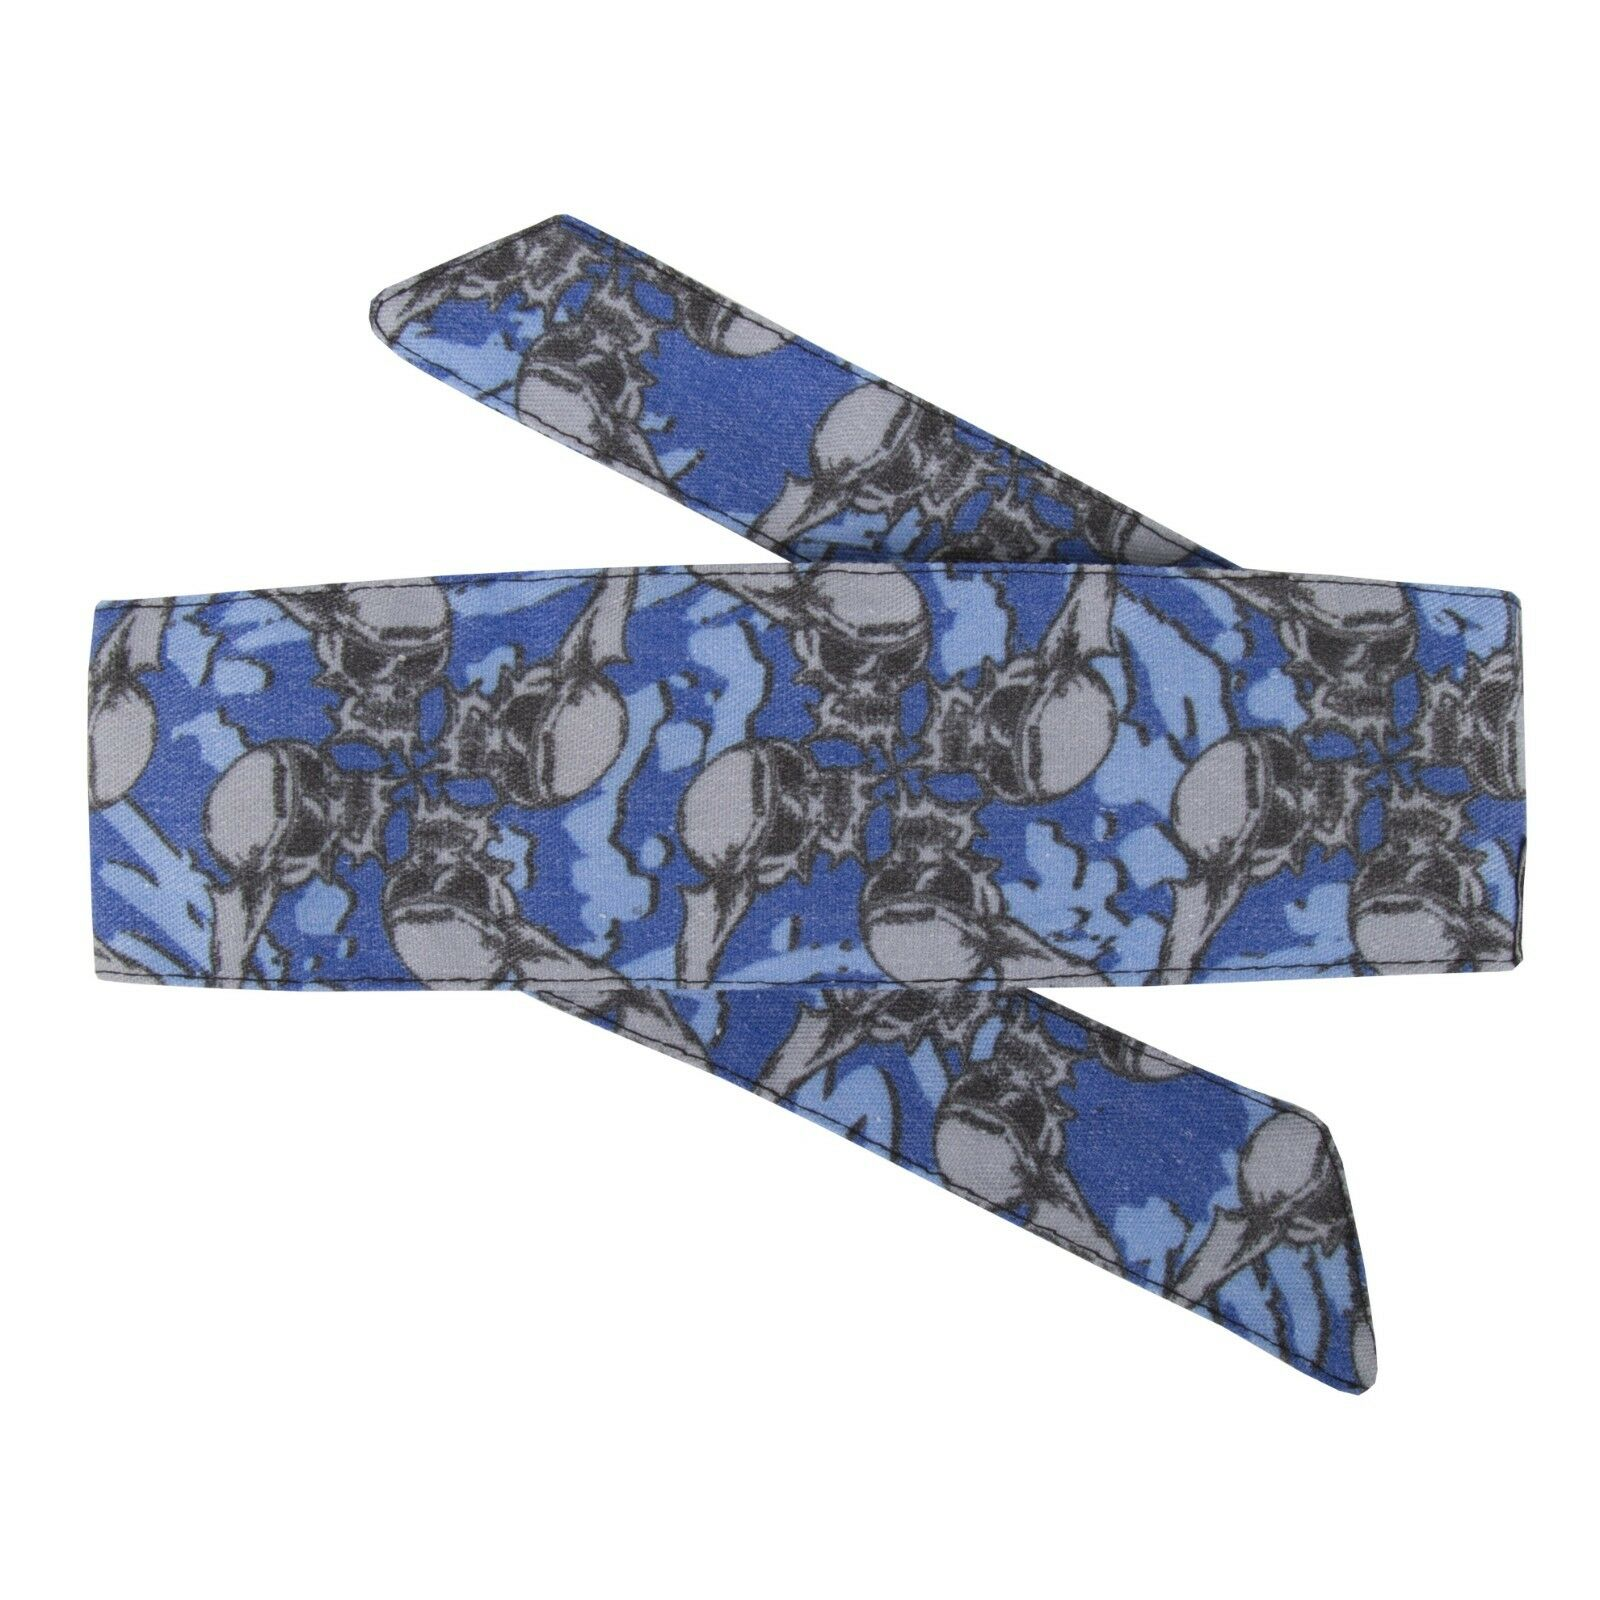 New HK Army Paintball Hostilewear Headband Head Band - Skulls bluee